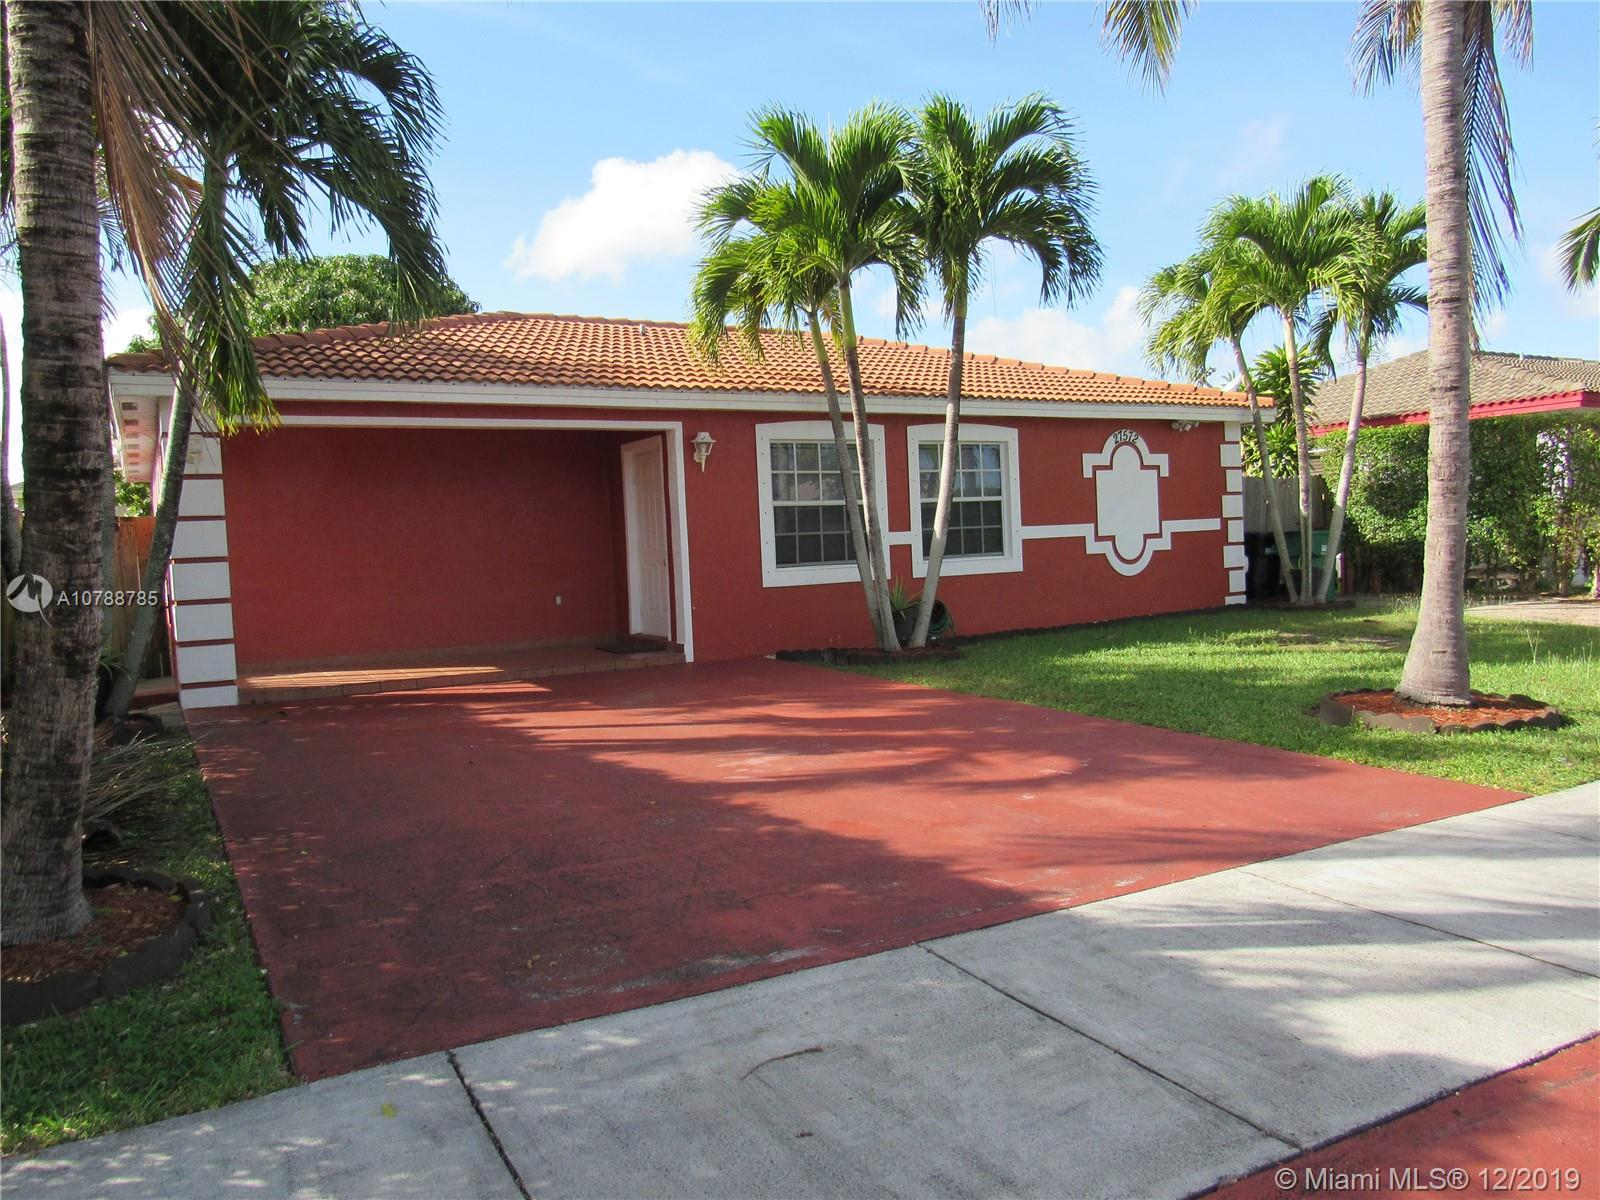 27572 SW 132nd Pl, Homestead, FL 33032 - Homestead, FL real estate listing